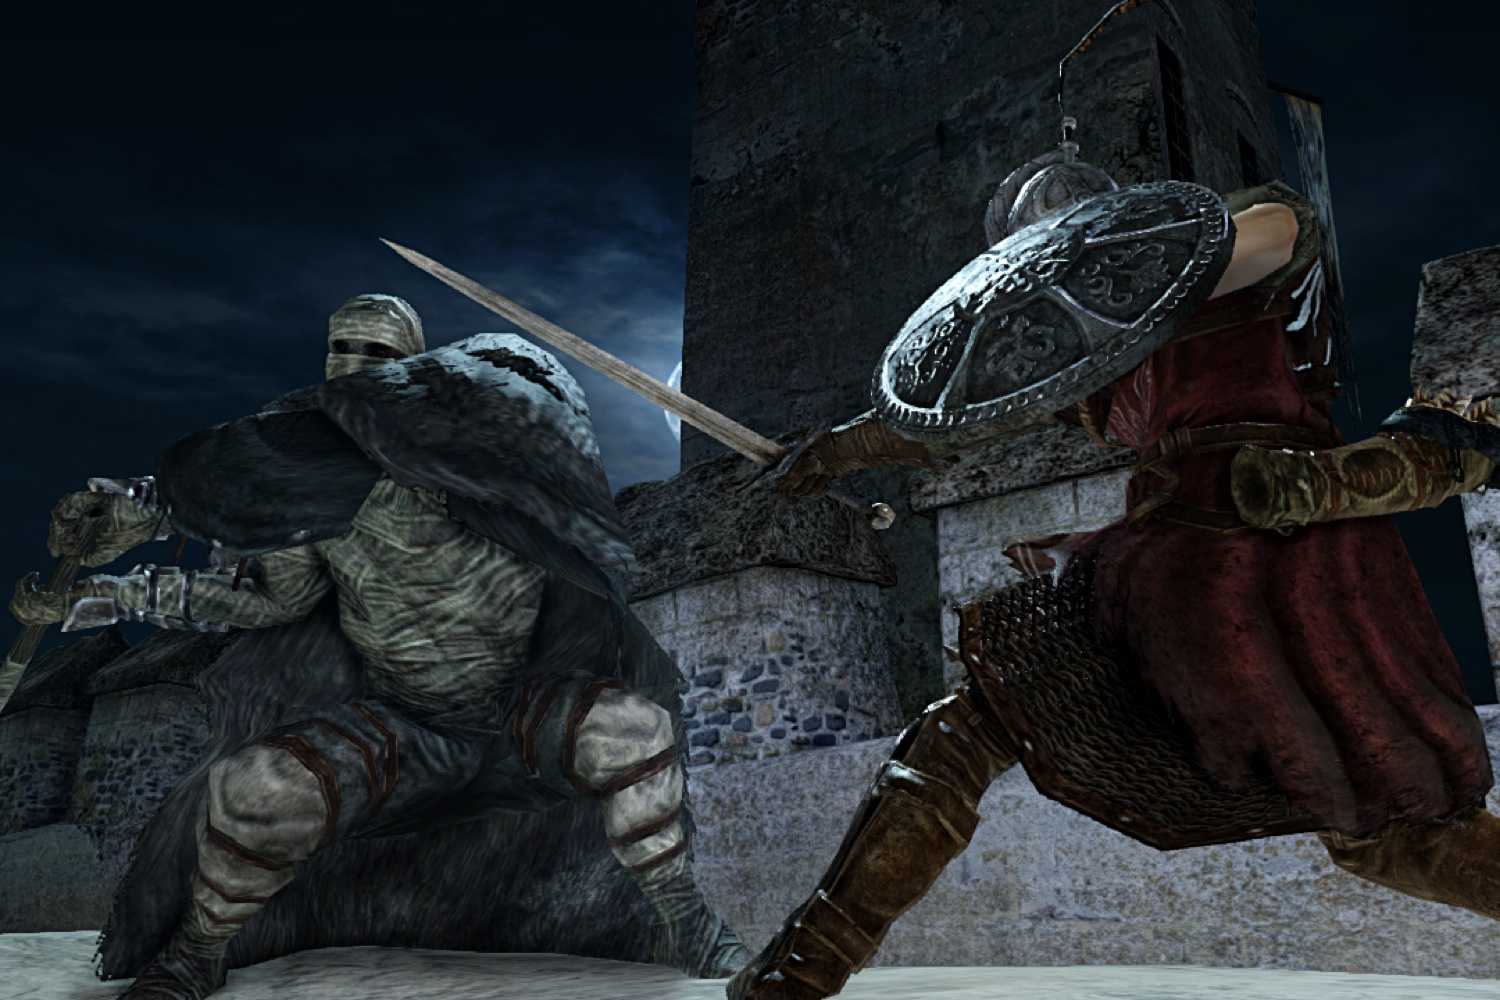 Dark Souls 2 S De Spawns Are Game Breaking Godawful Or Inspired Genius Time Original contents from dark souls 2, from software. dark souls 2 s de spawns are game